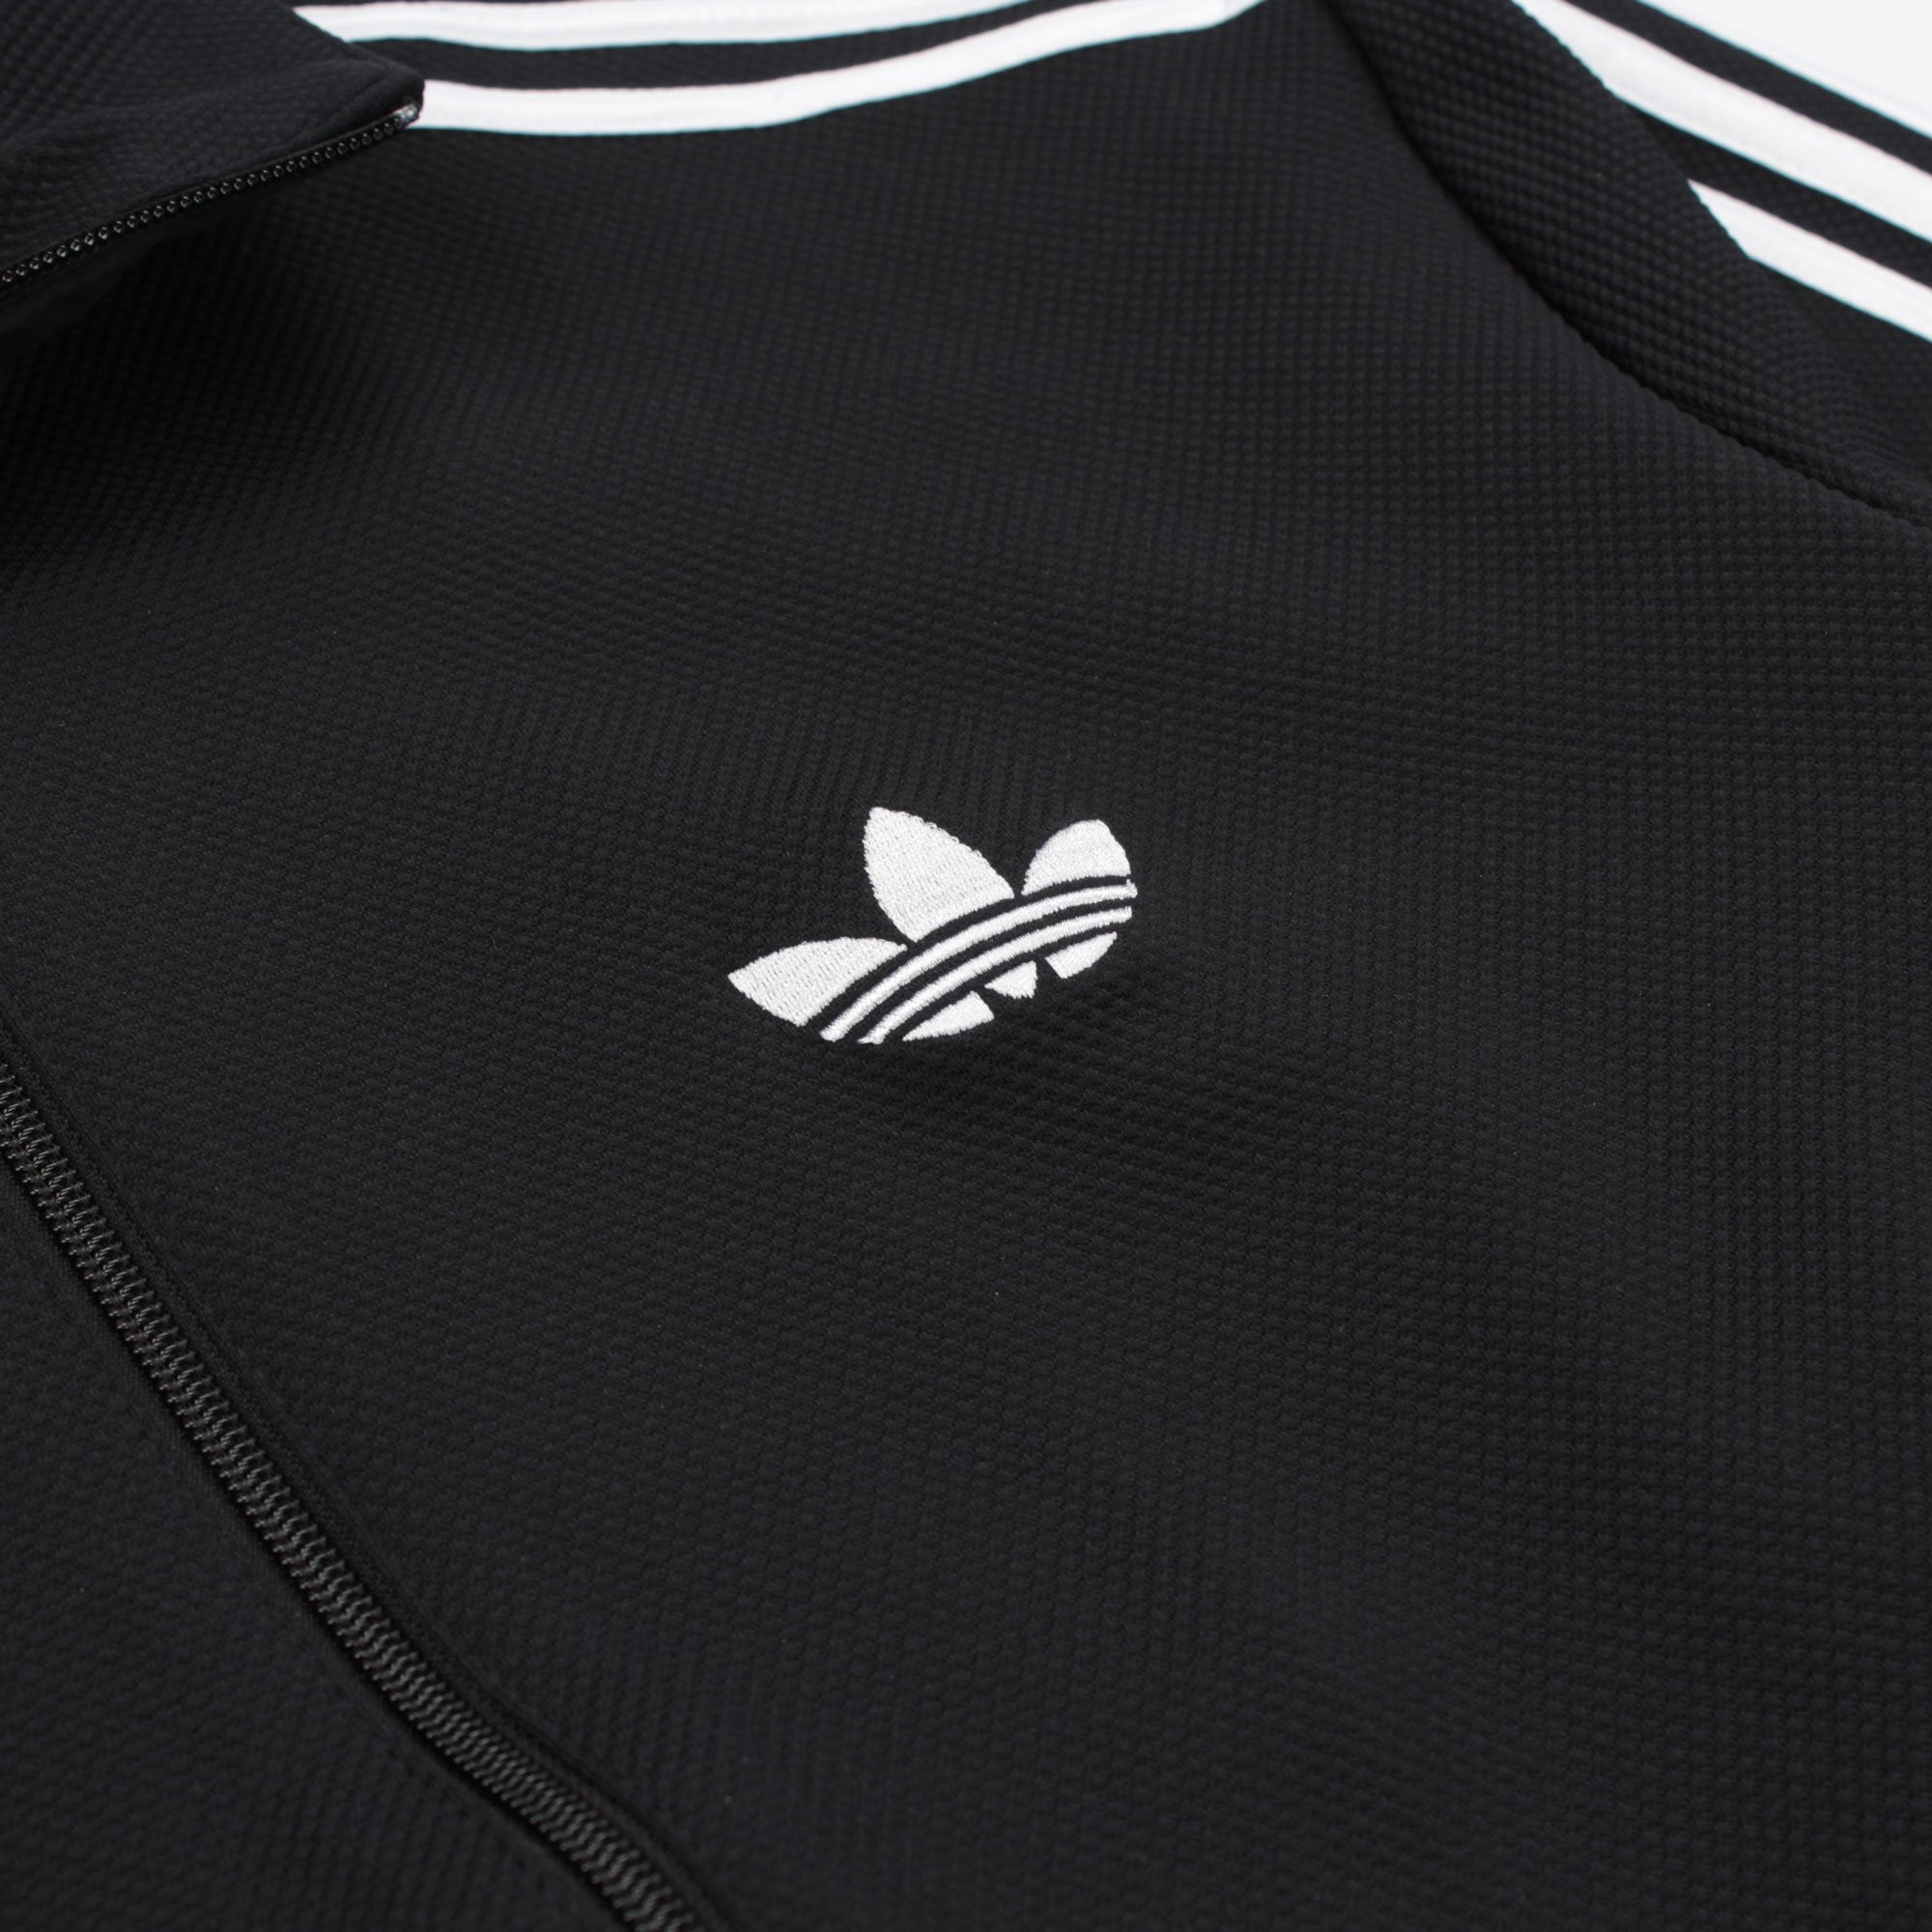 Adidas Tj Firebird Jacket Product Photo #2